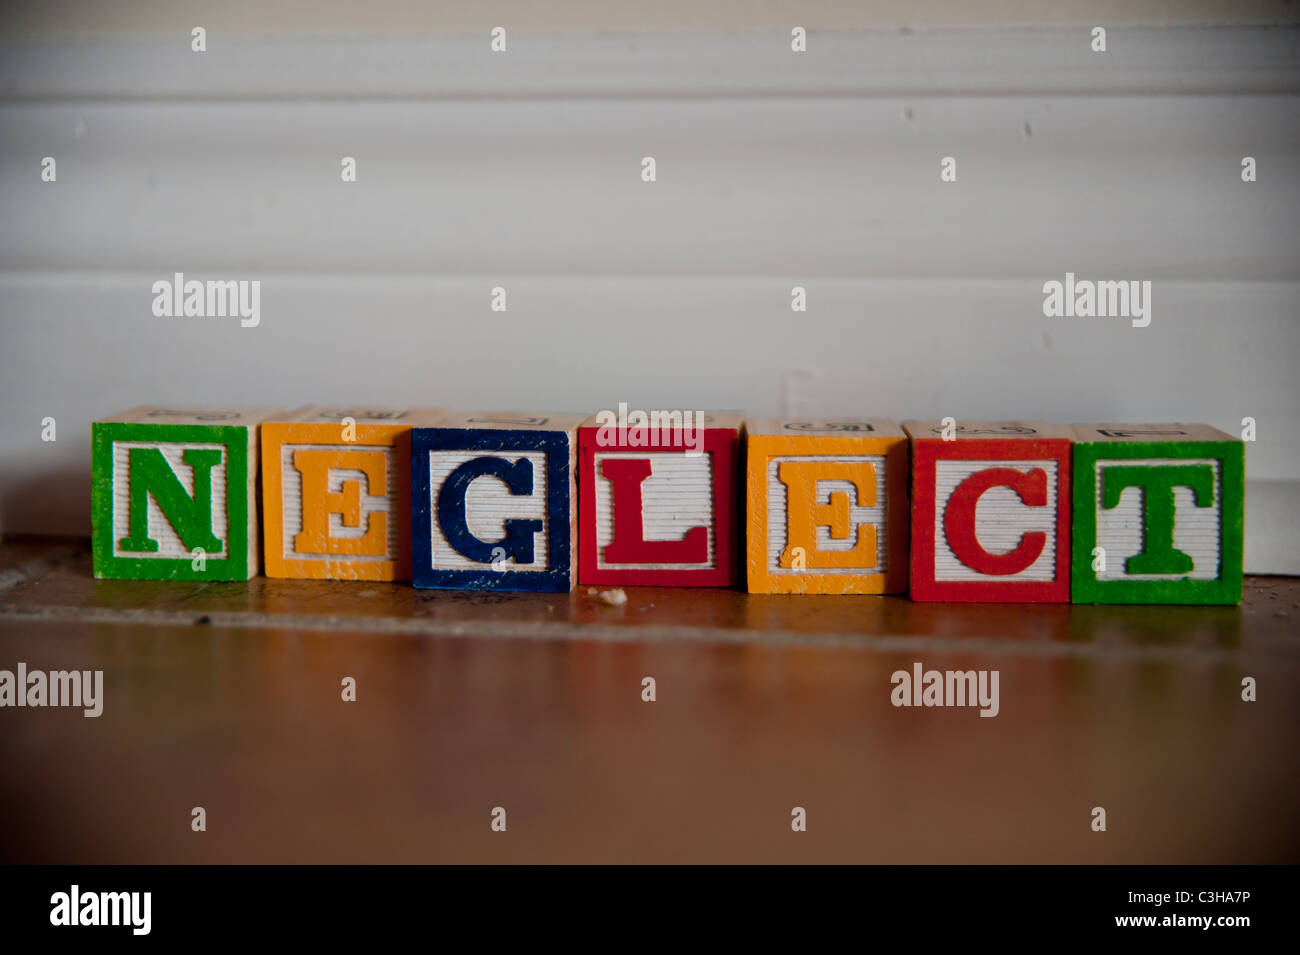 The word neglect spelled out in colourful children's block letters in a dusty corner of a house. - Stock Image